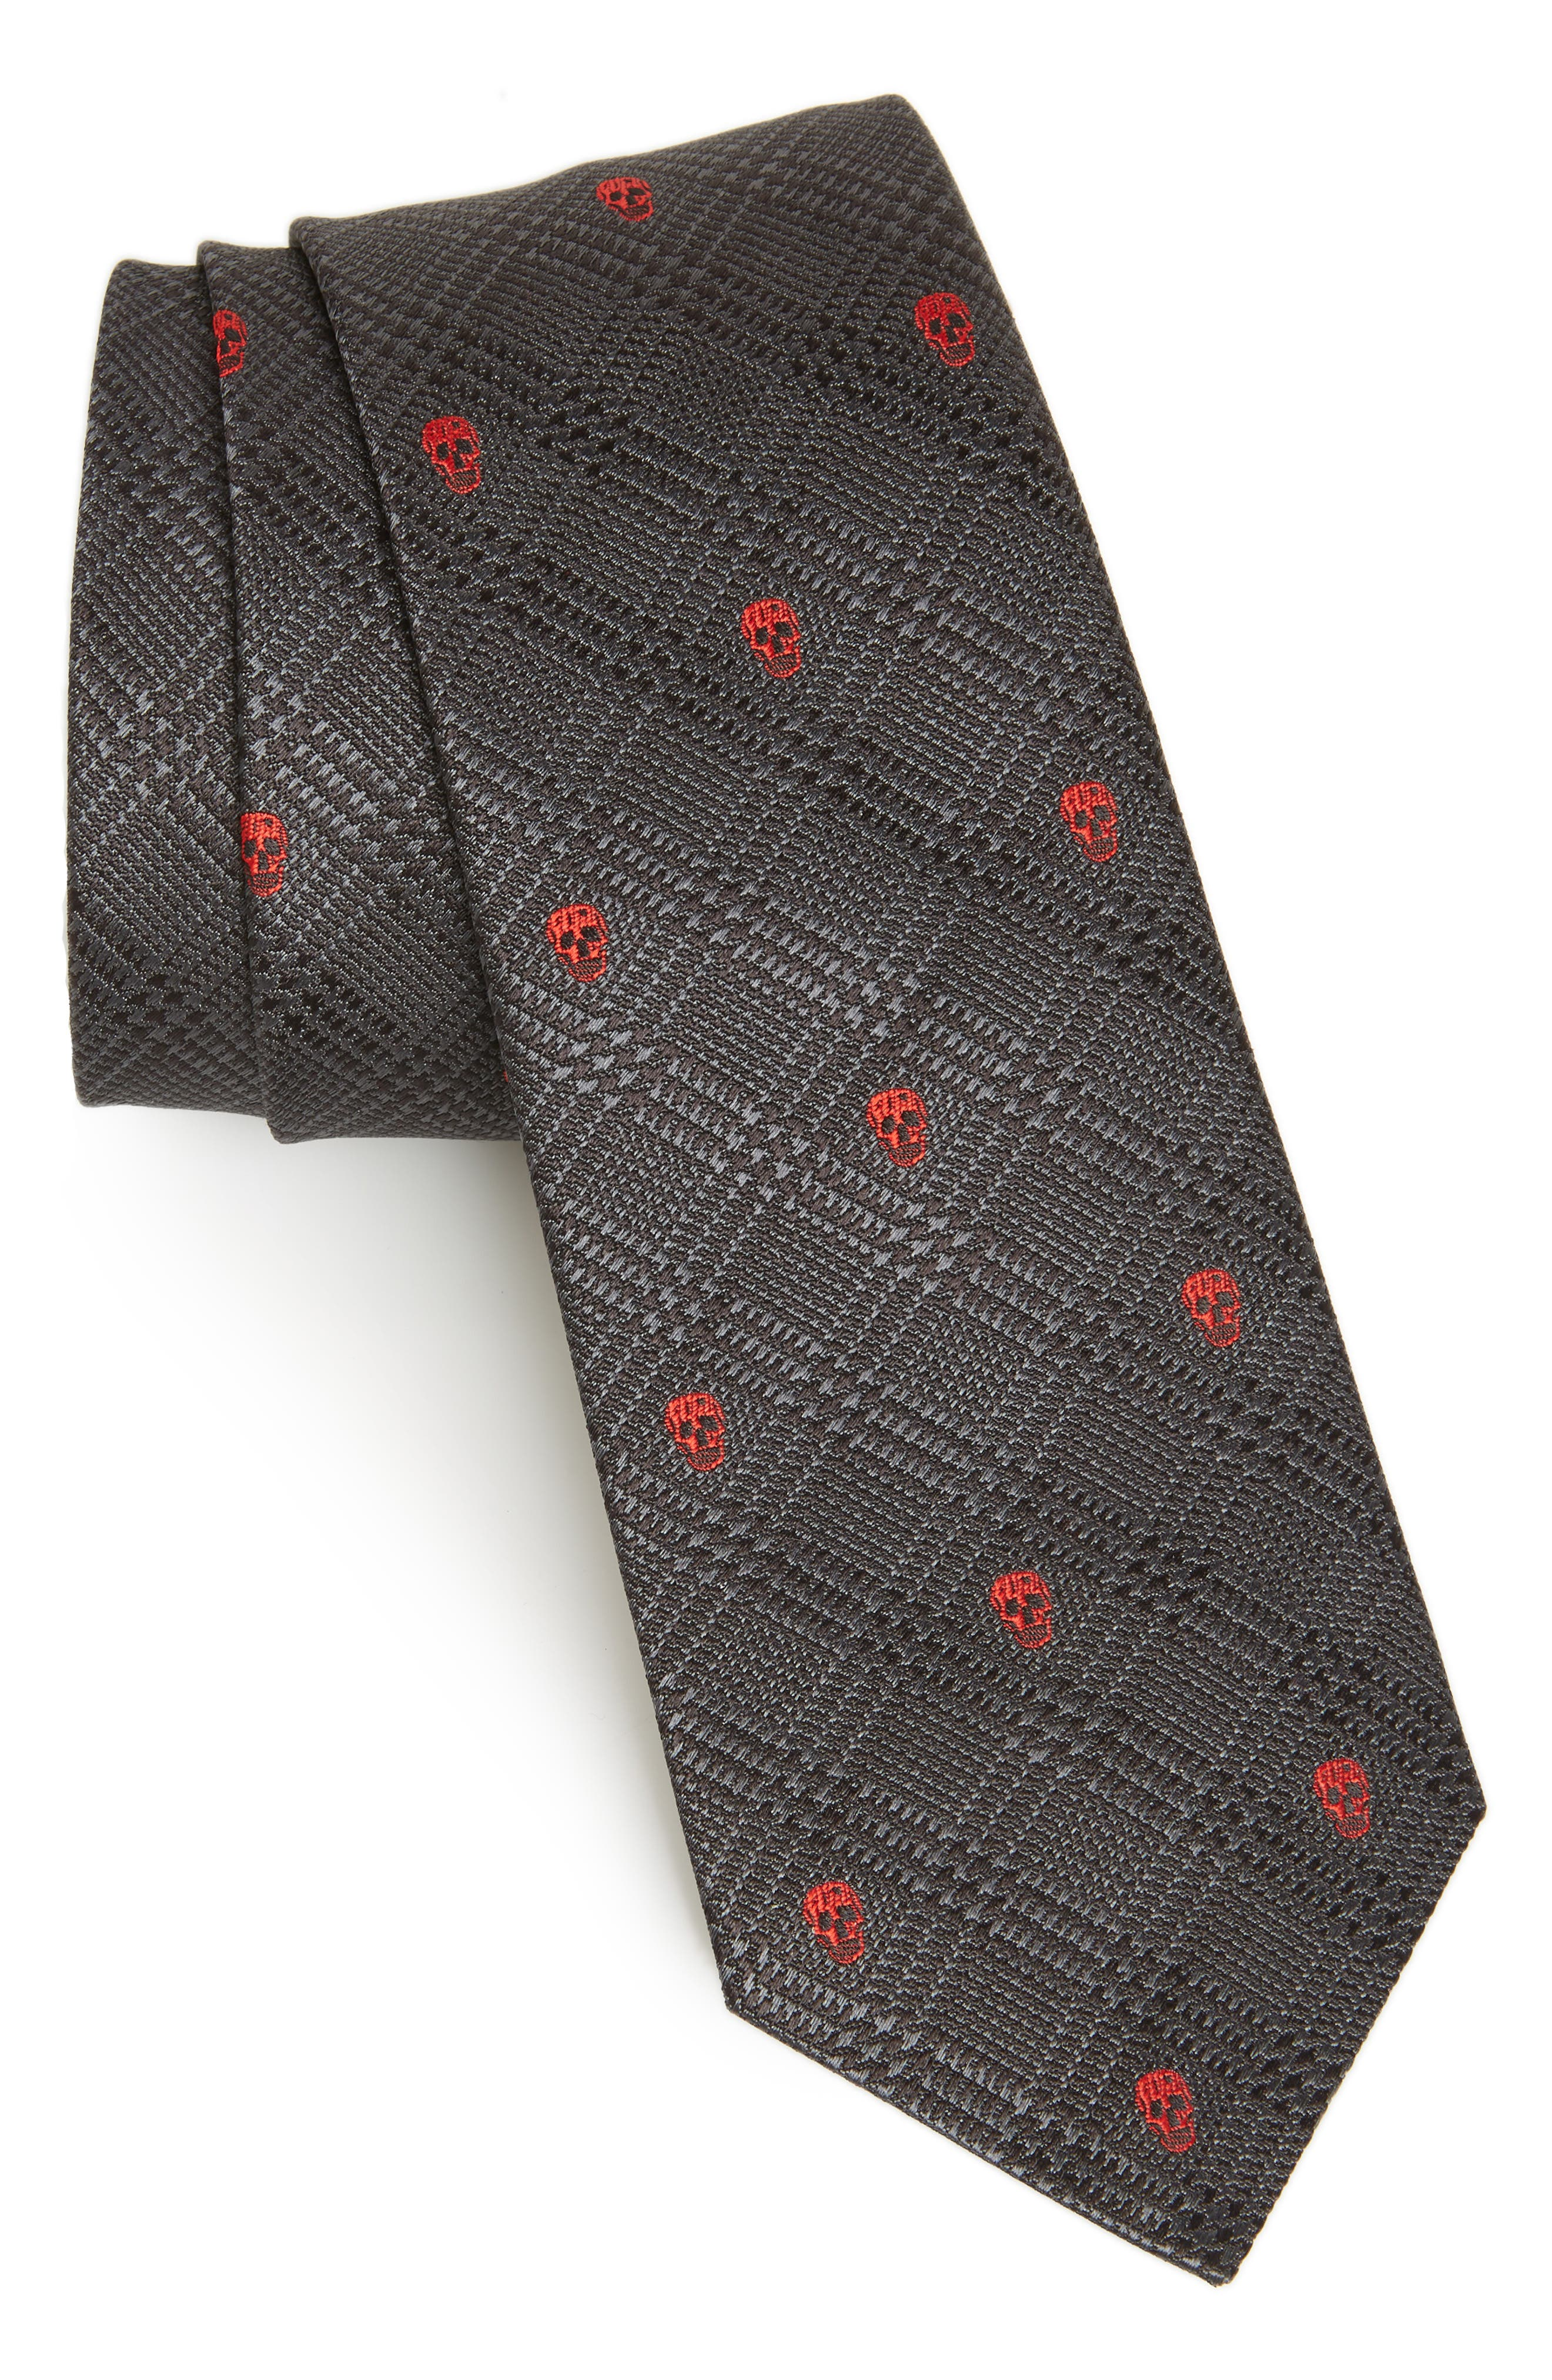 ALEXANDER MCQUEEN Woven Silk Tie, Main, color, BLACK AND RED